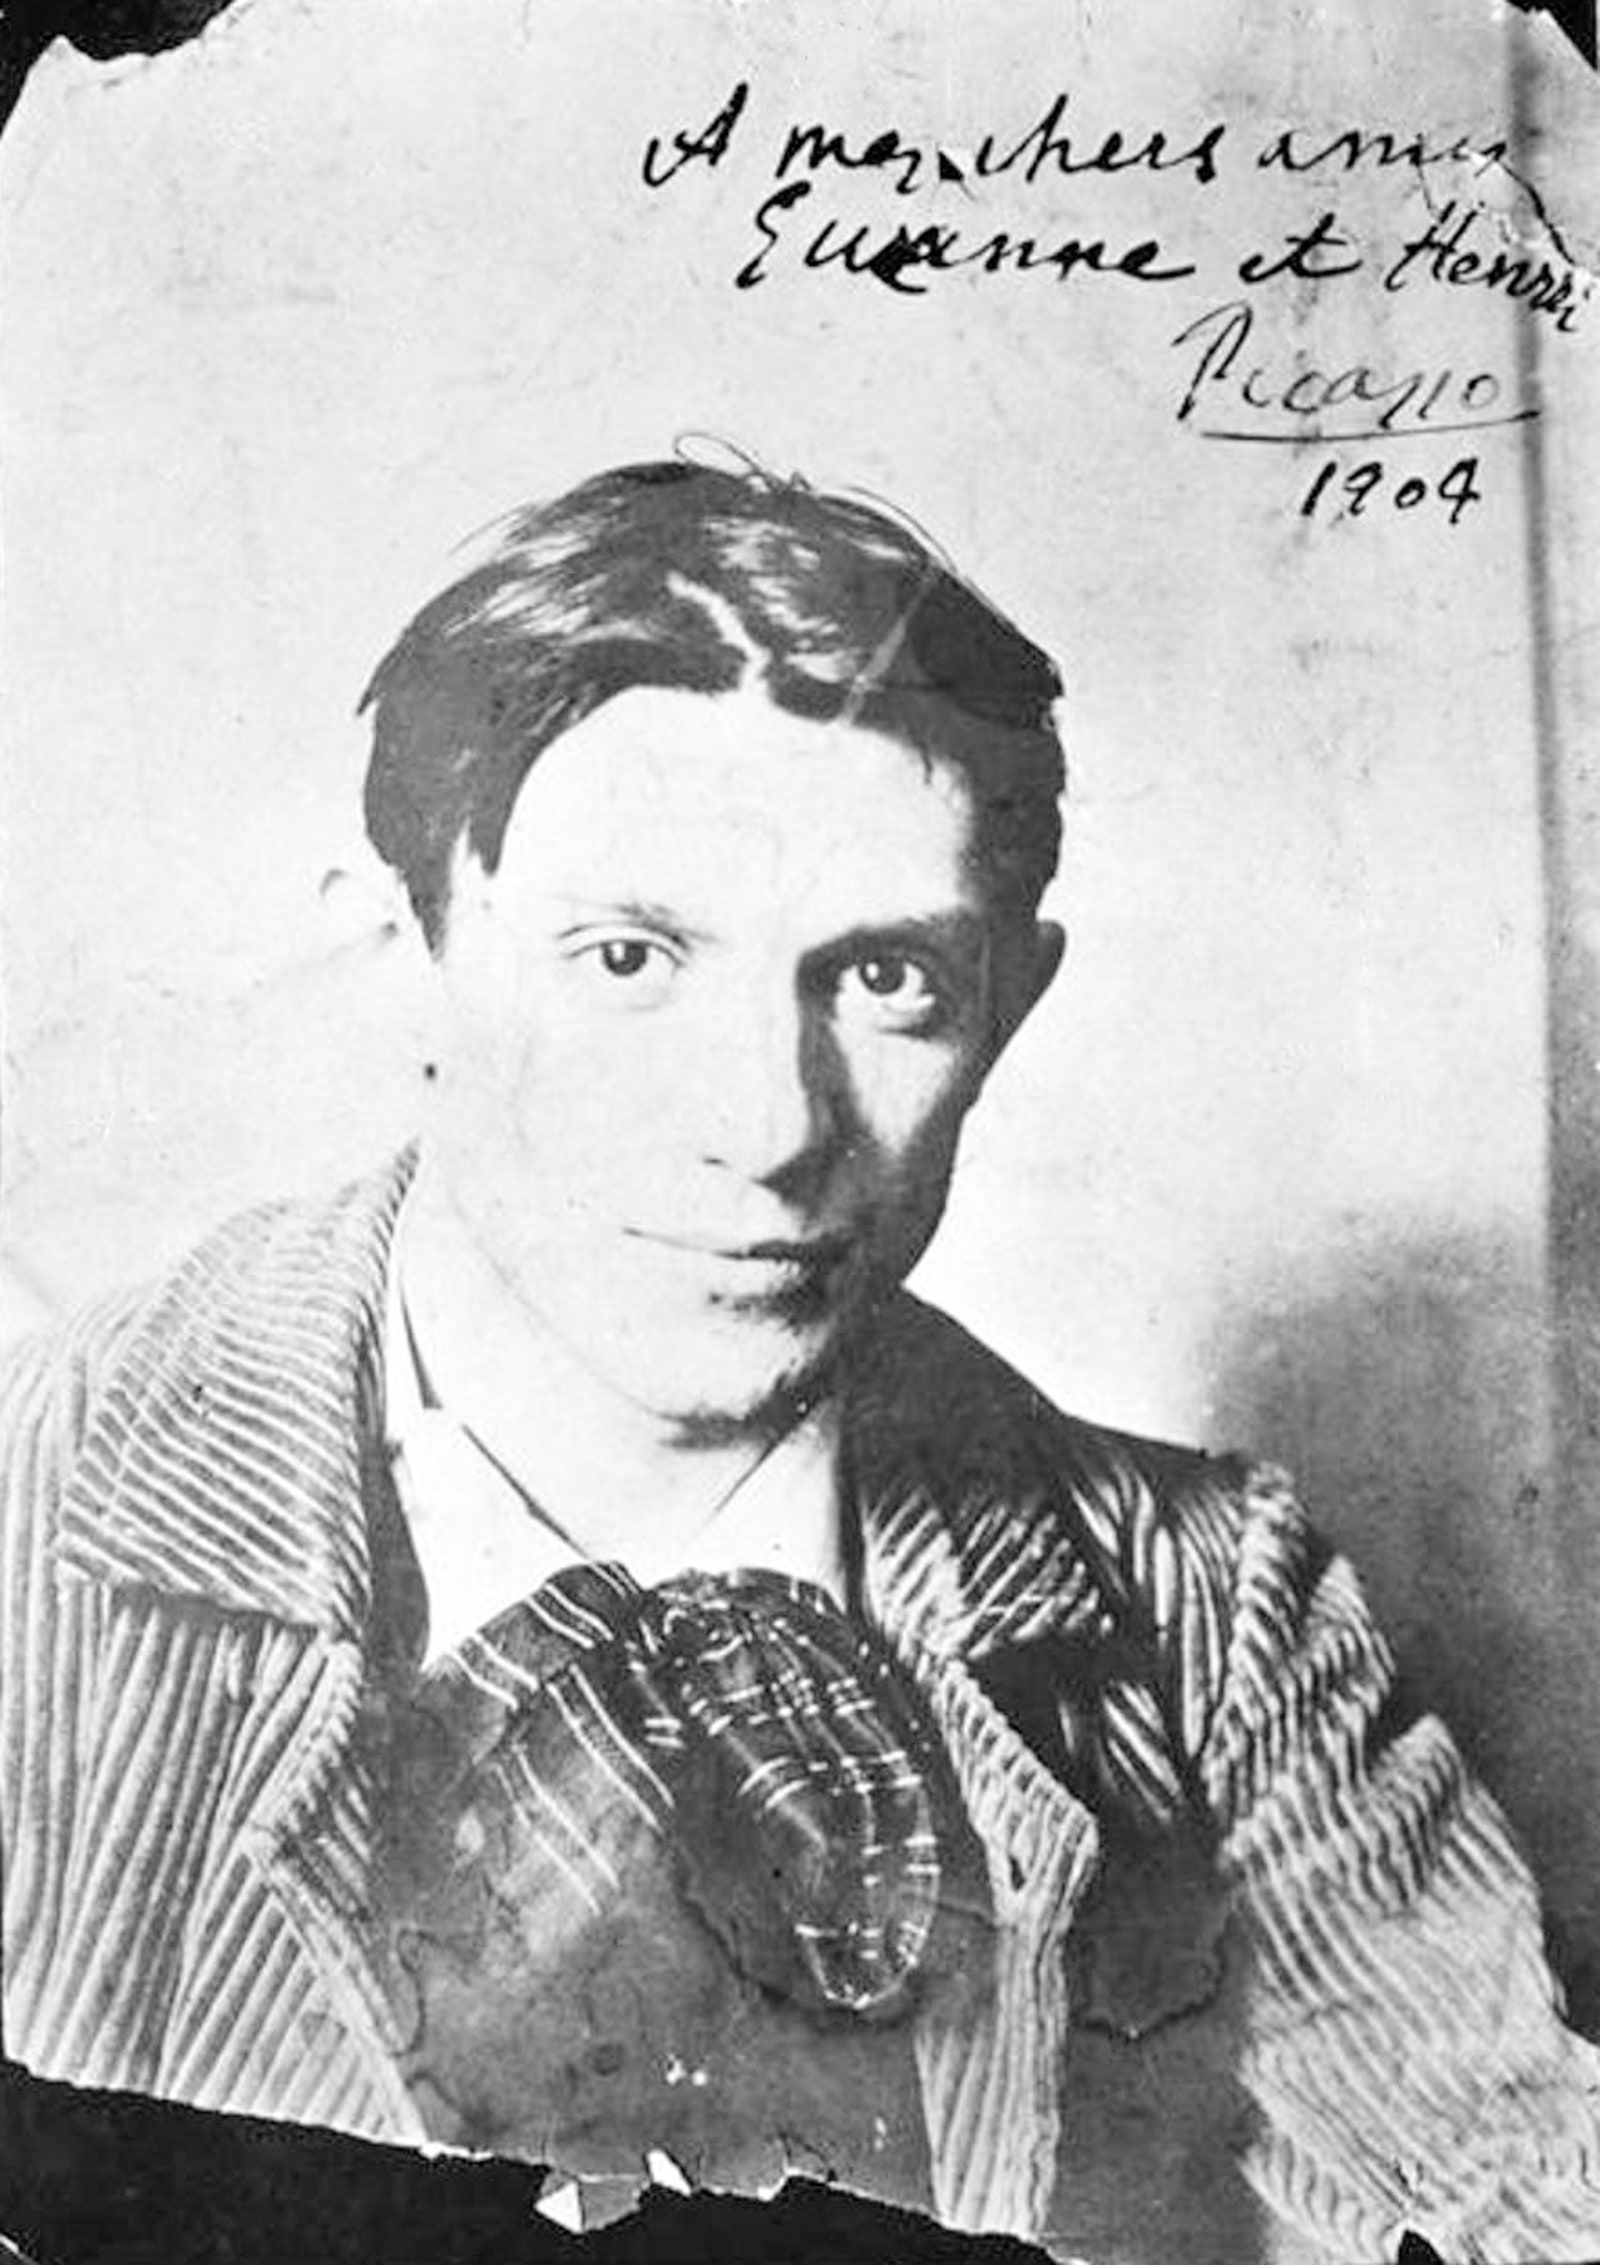 Pablo Picasso 5 Facts You Didn T Know About The Famous Artist In 2020 Pablo Picasso Famous Artists Pablo Picasso Young